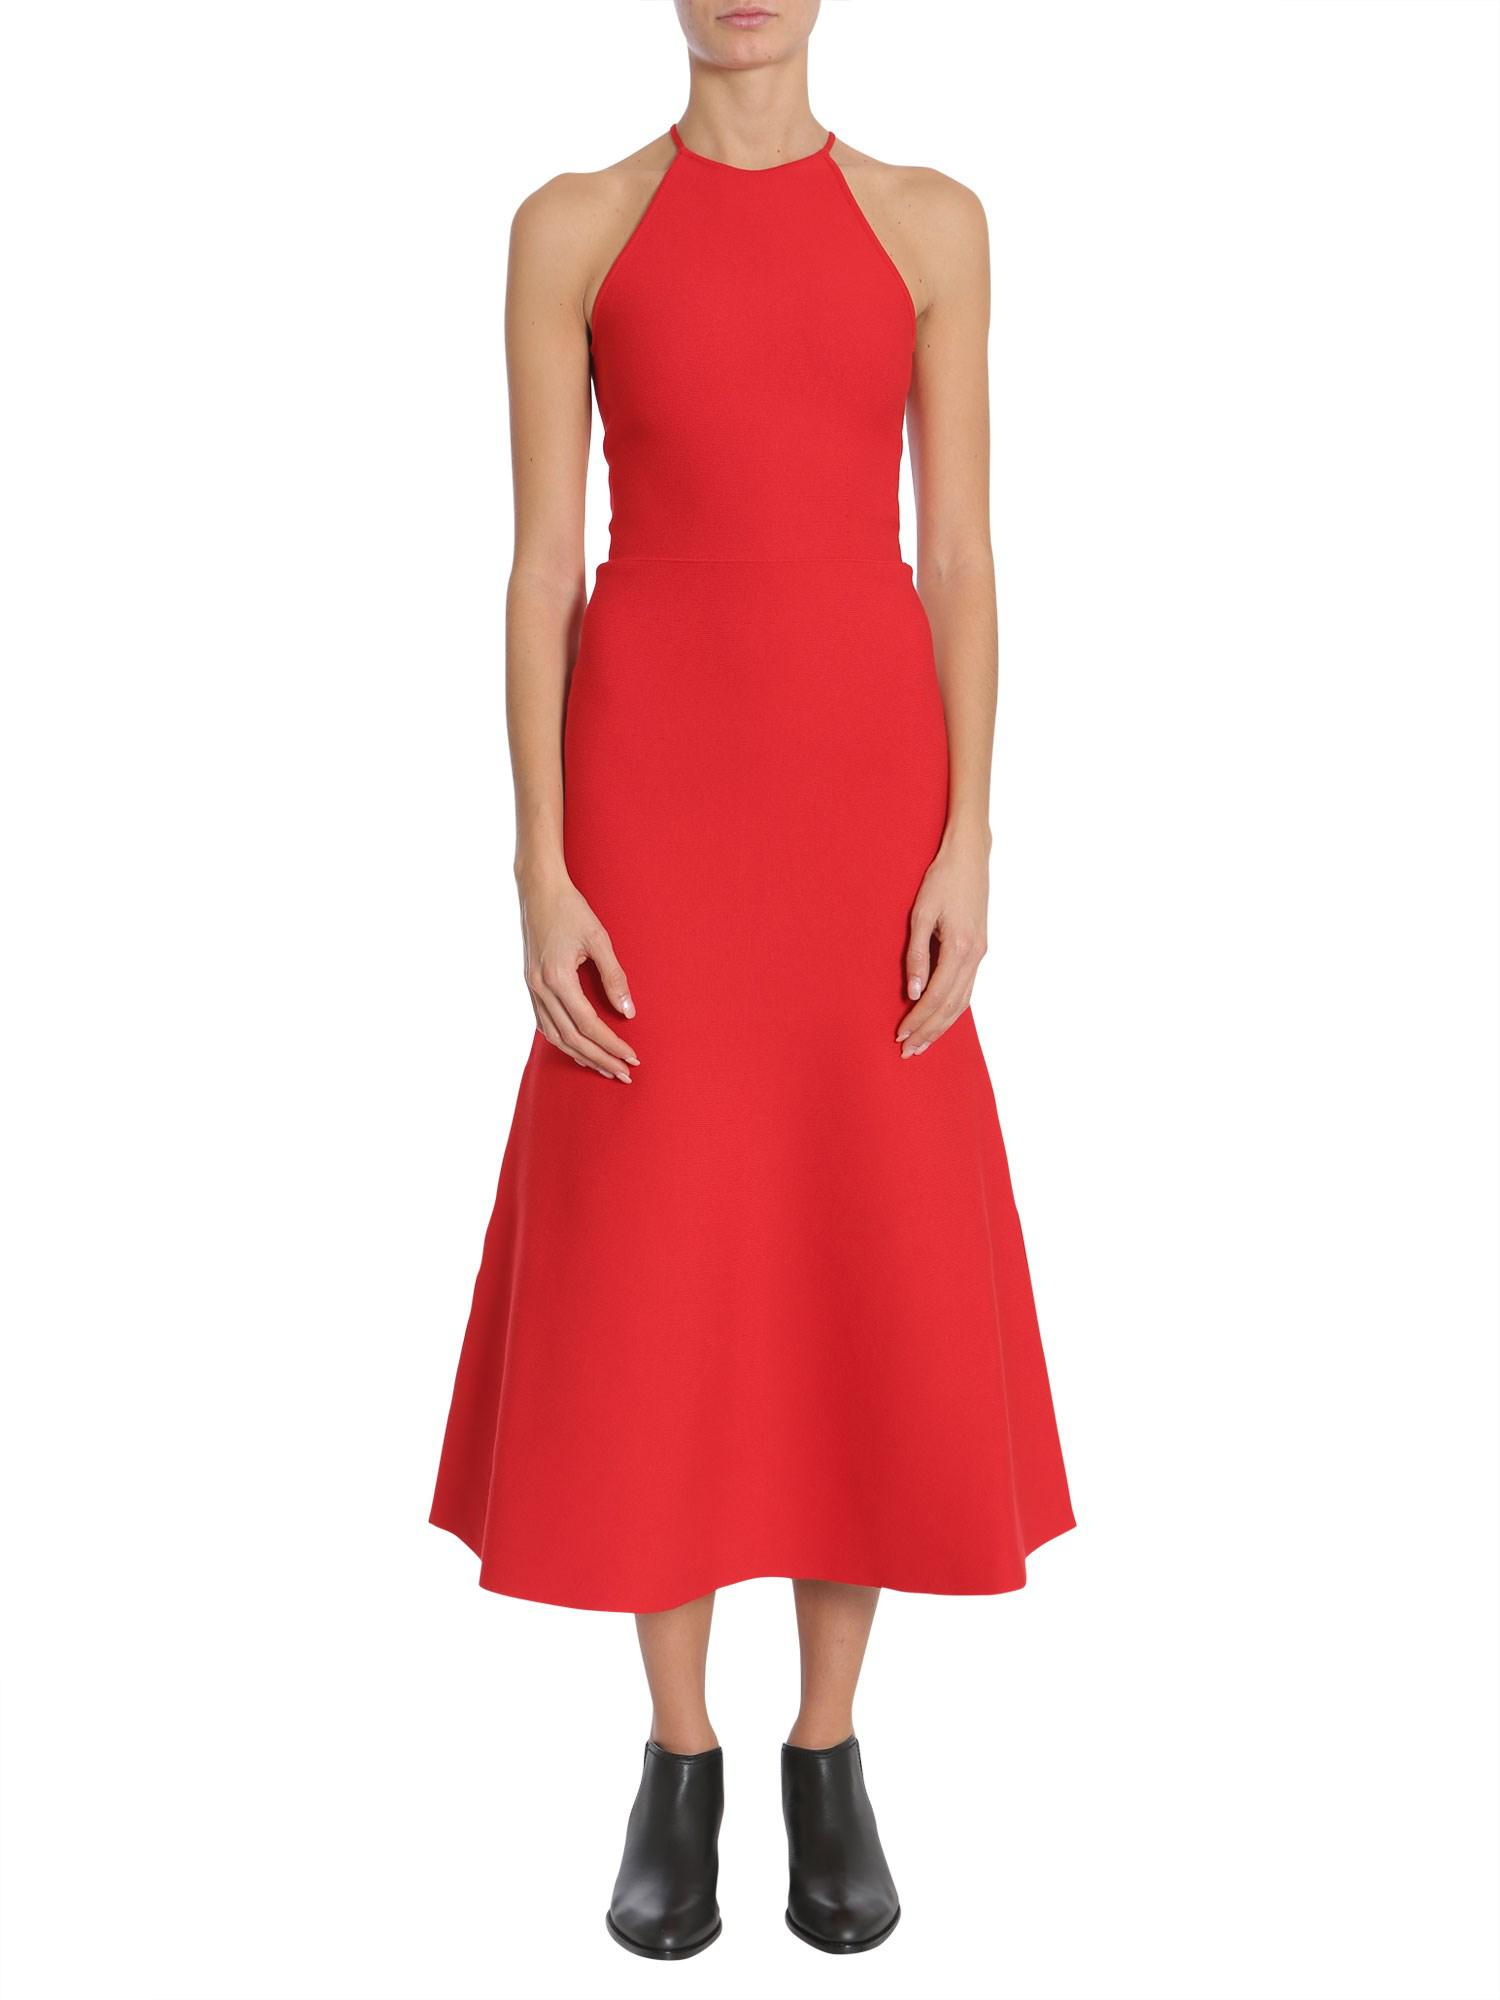 02a59ec6f7e Alexander Wang Sweater Dress With Crisscross Closure in Red - Lyst